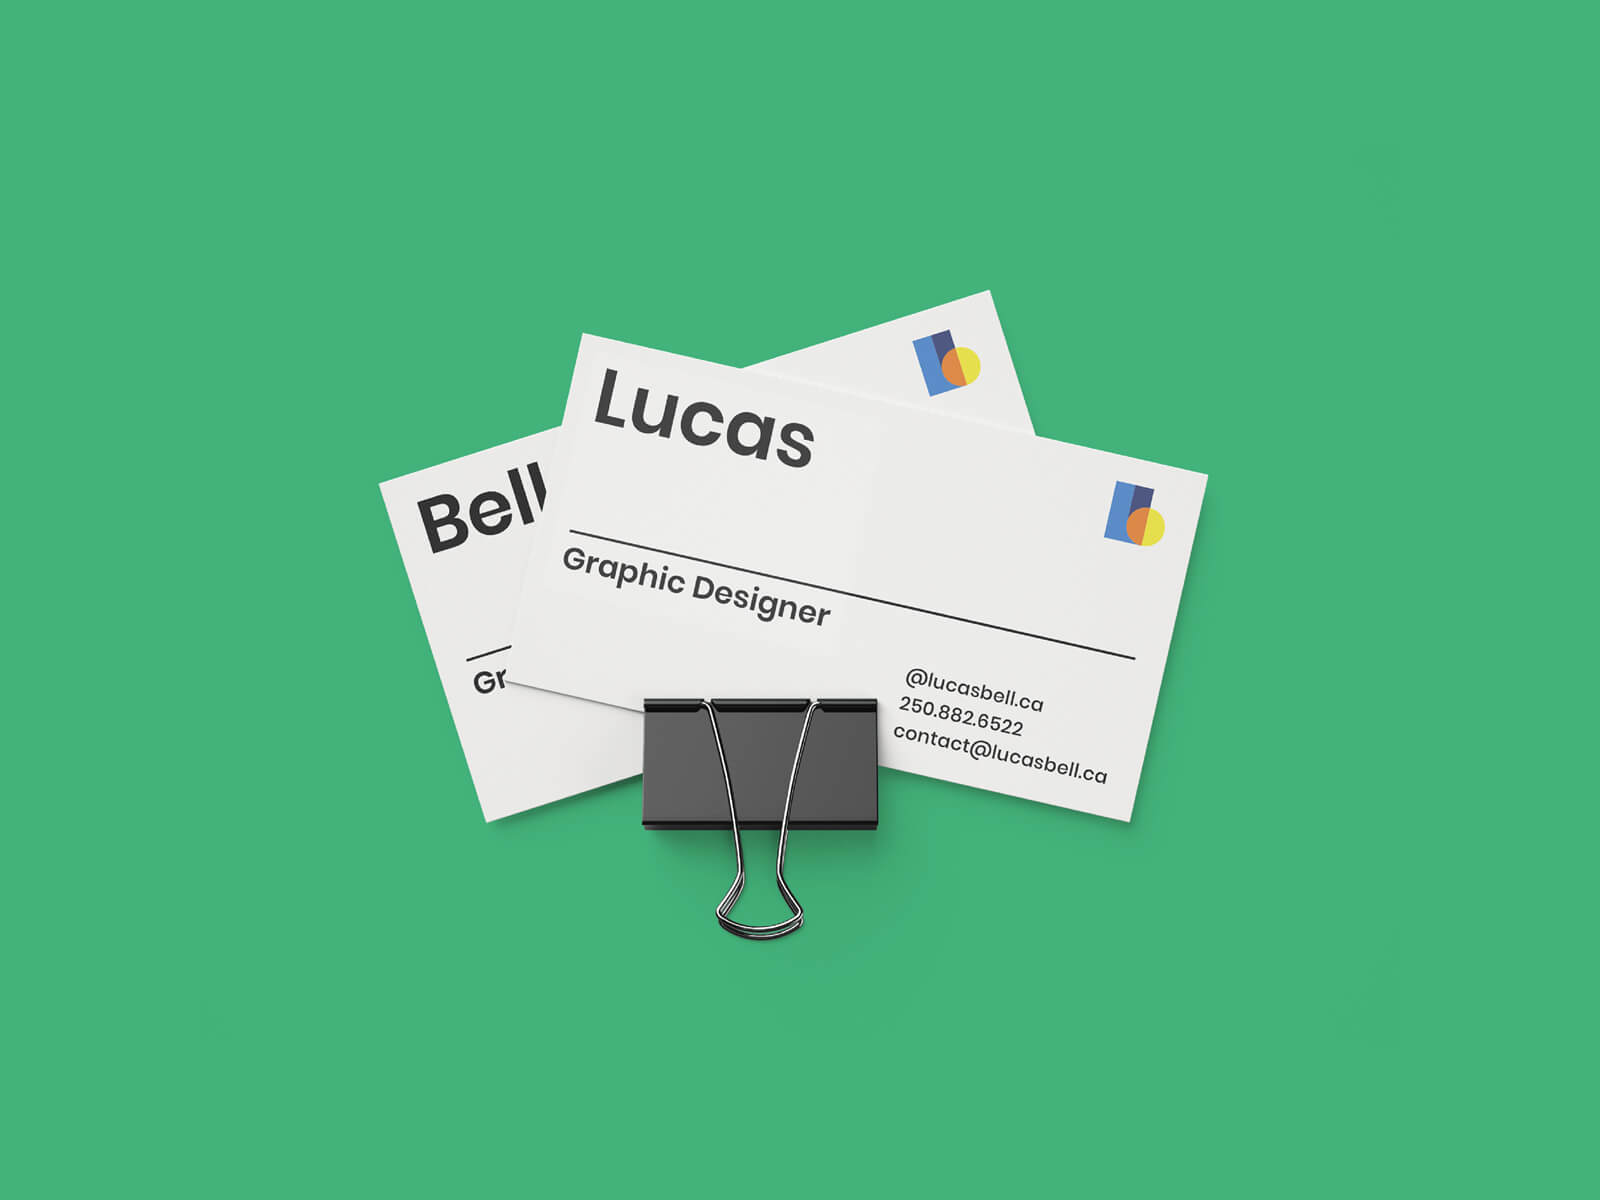 Business Card Design Designed by Lucas Bell Graphic Designer in Victoria BC Canada